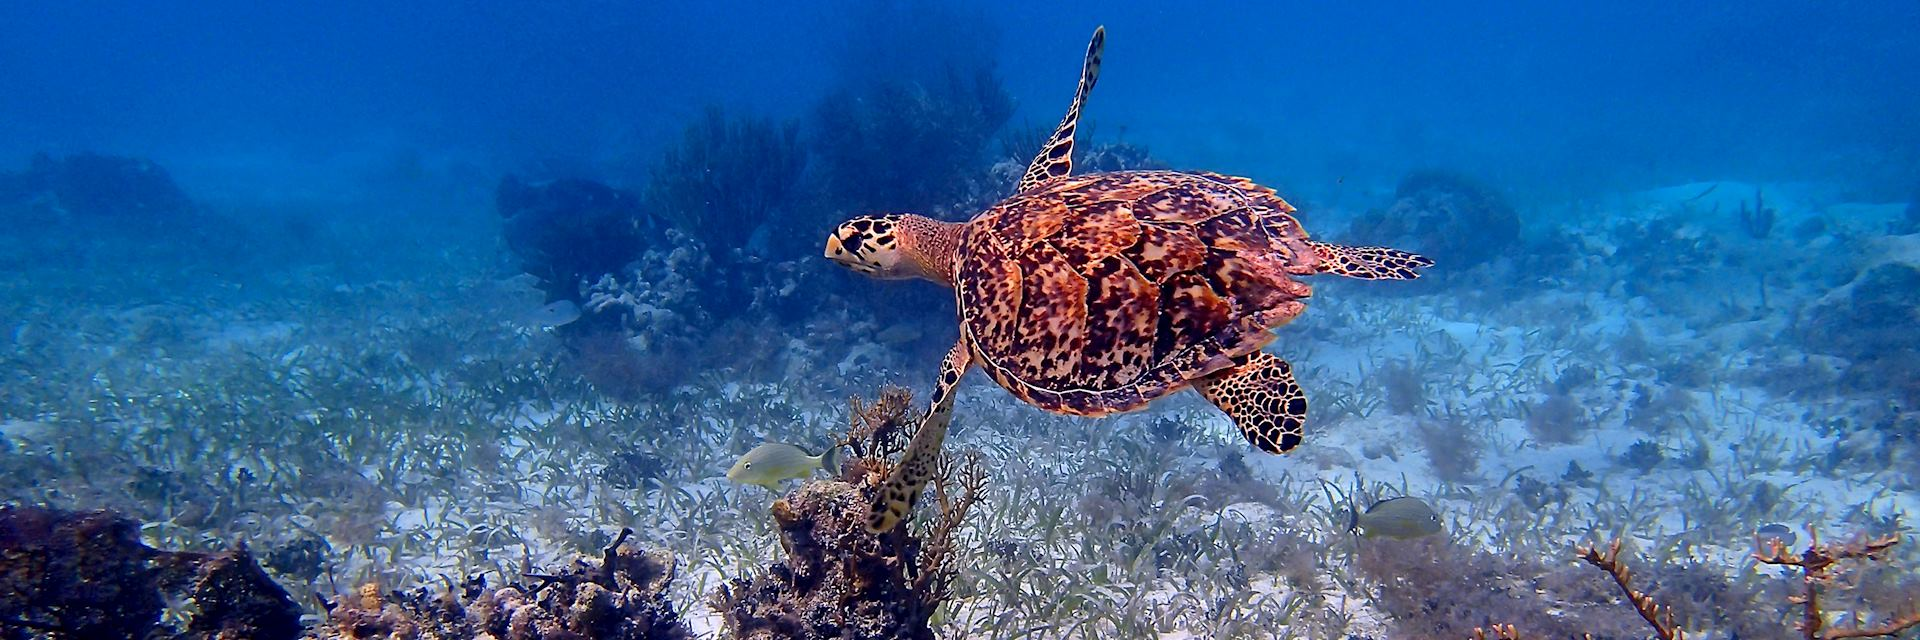 Sea turtle, Belize